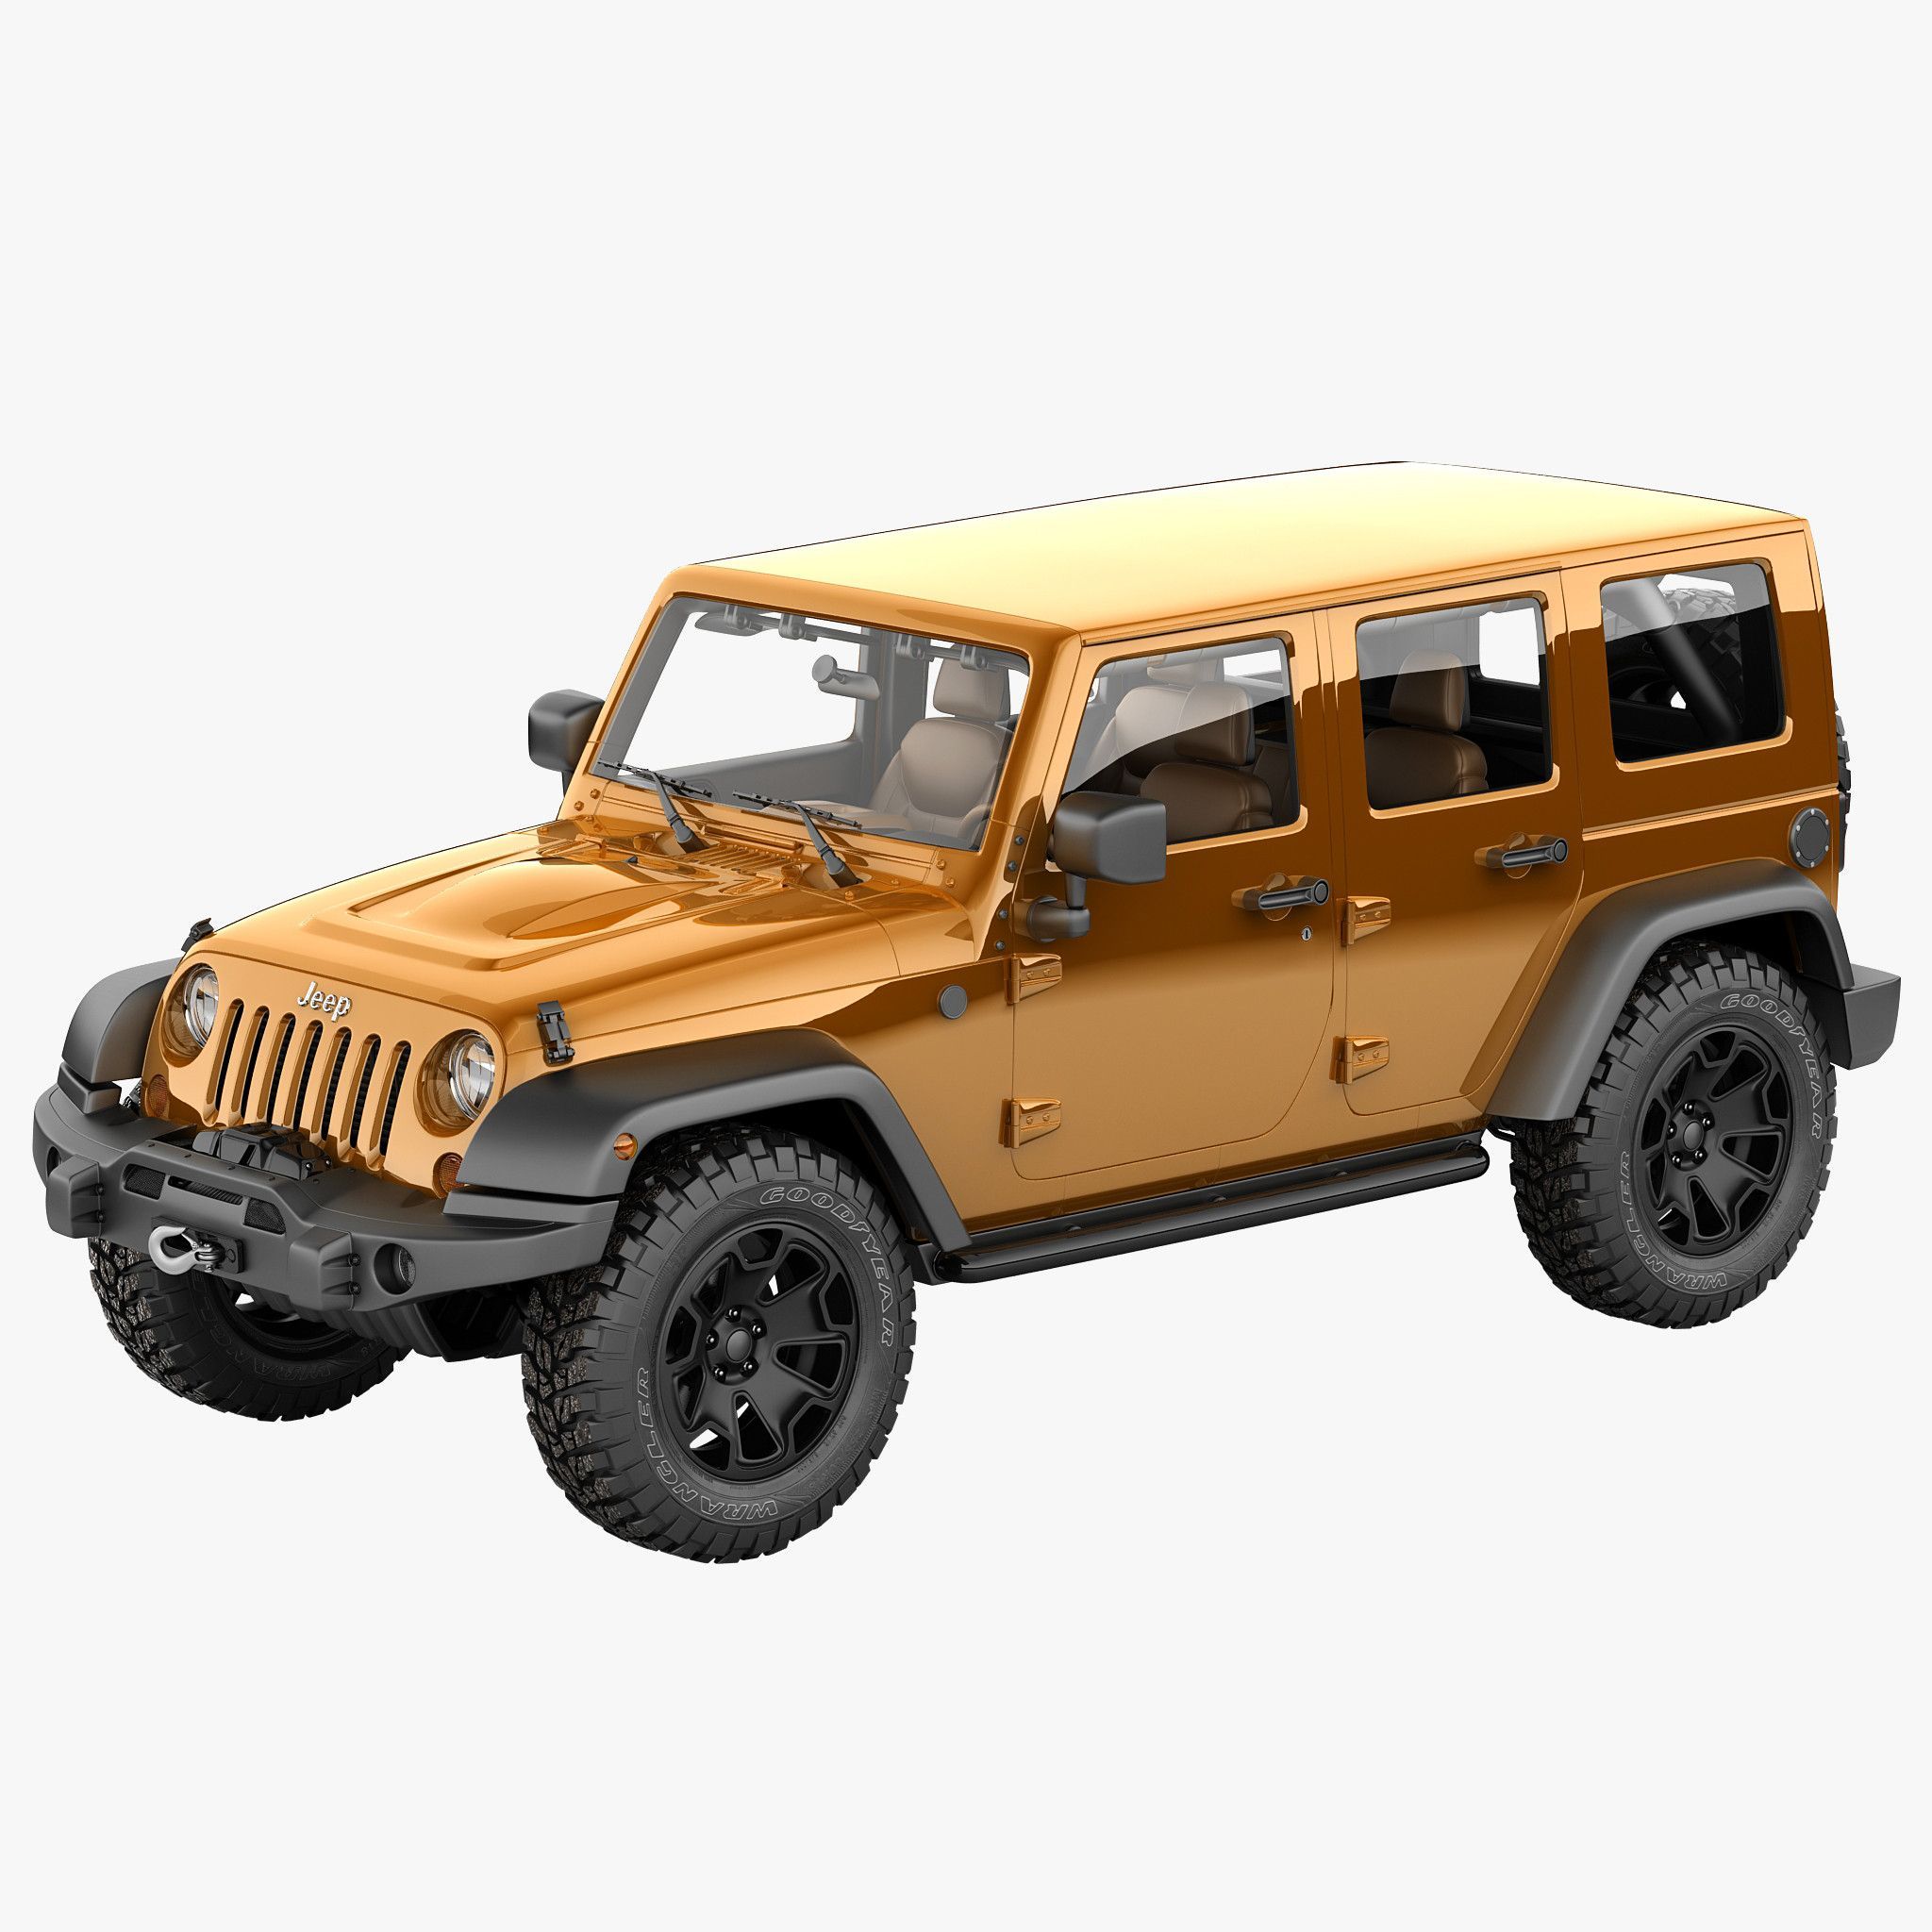 Jeep Model Names Jpeg Http Carimagescolay Casa Jeep Model Names Jpeg Html